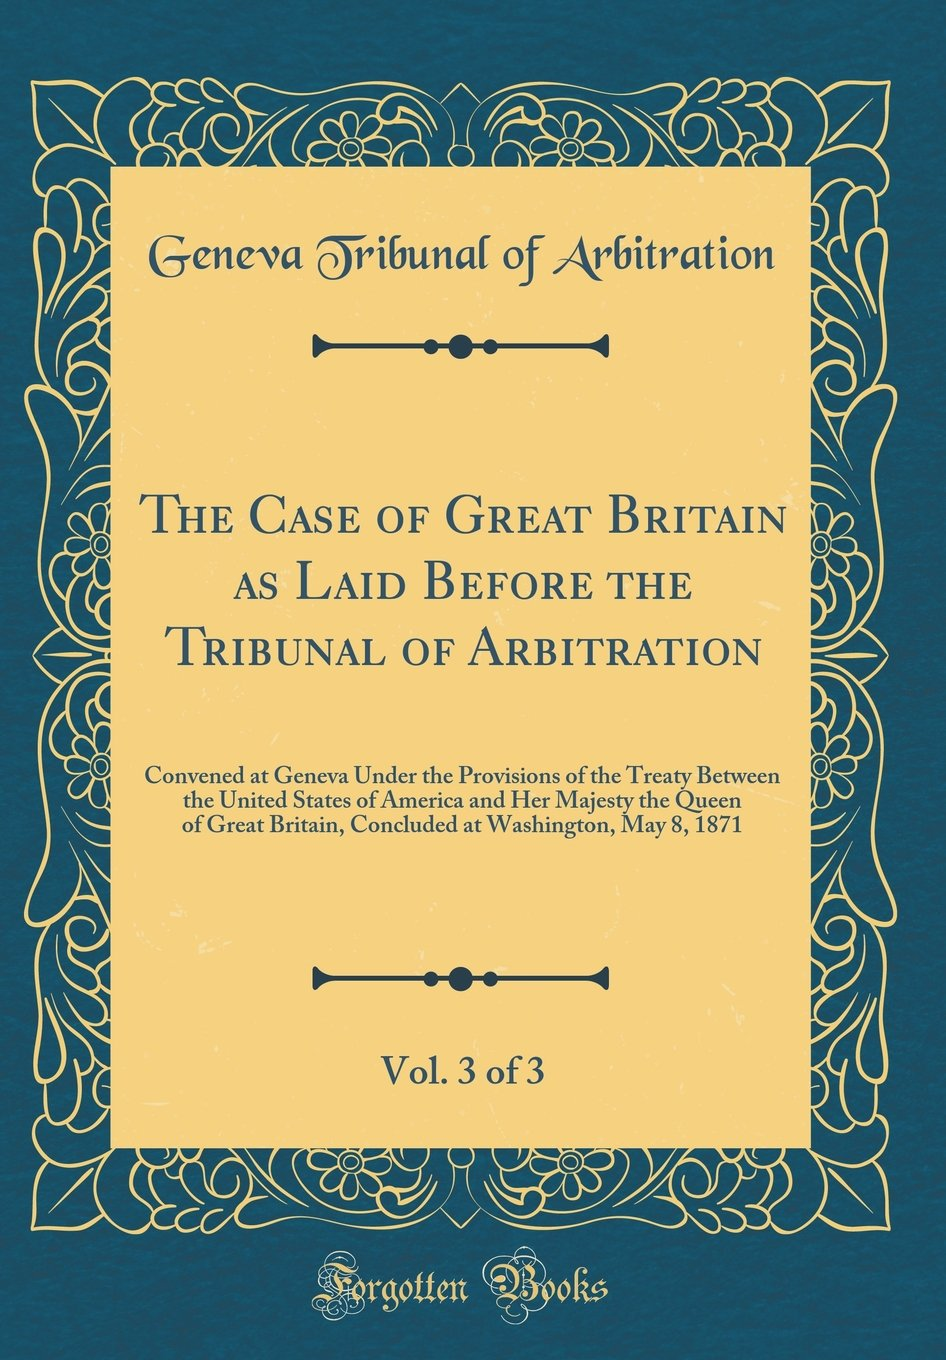 Read Online The Case of Great Britain as Laid Before the Tribunal of Arbitration, Vol. 3 of 3: Convened at Geneva Under the Provisions of the Treaty Between the ... Britain, Concluded at Washington, May 8, 1871 pdf